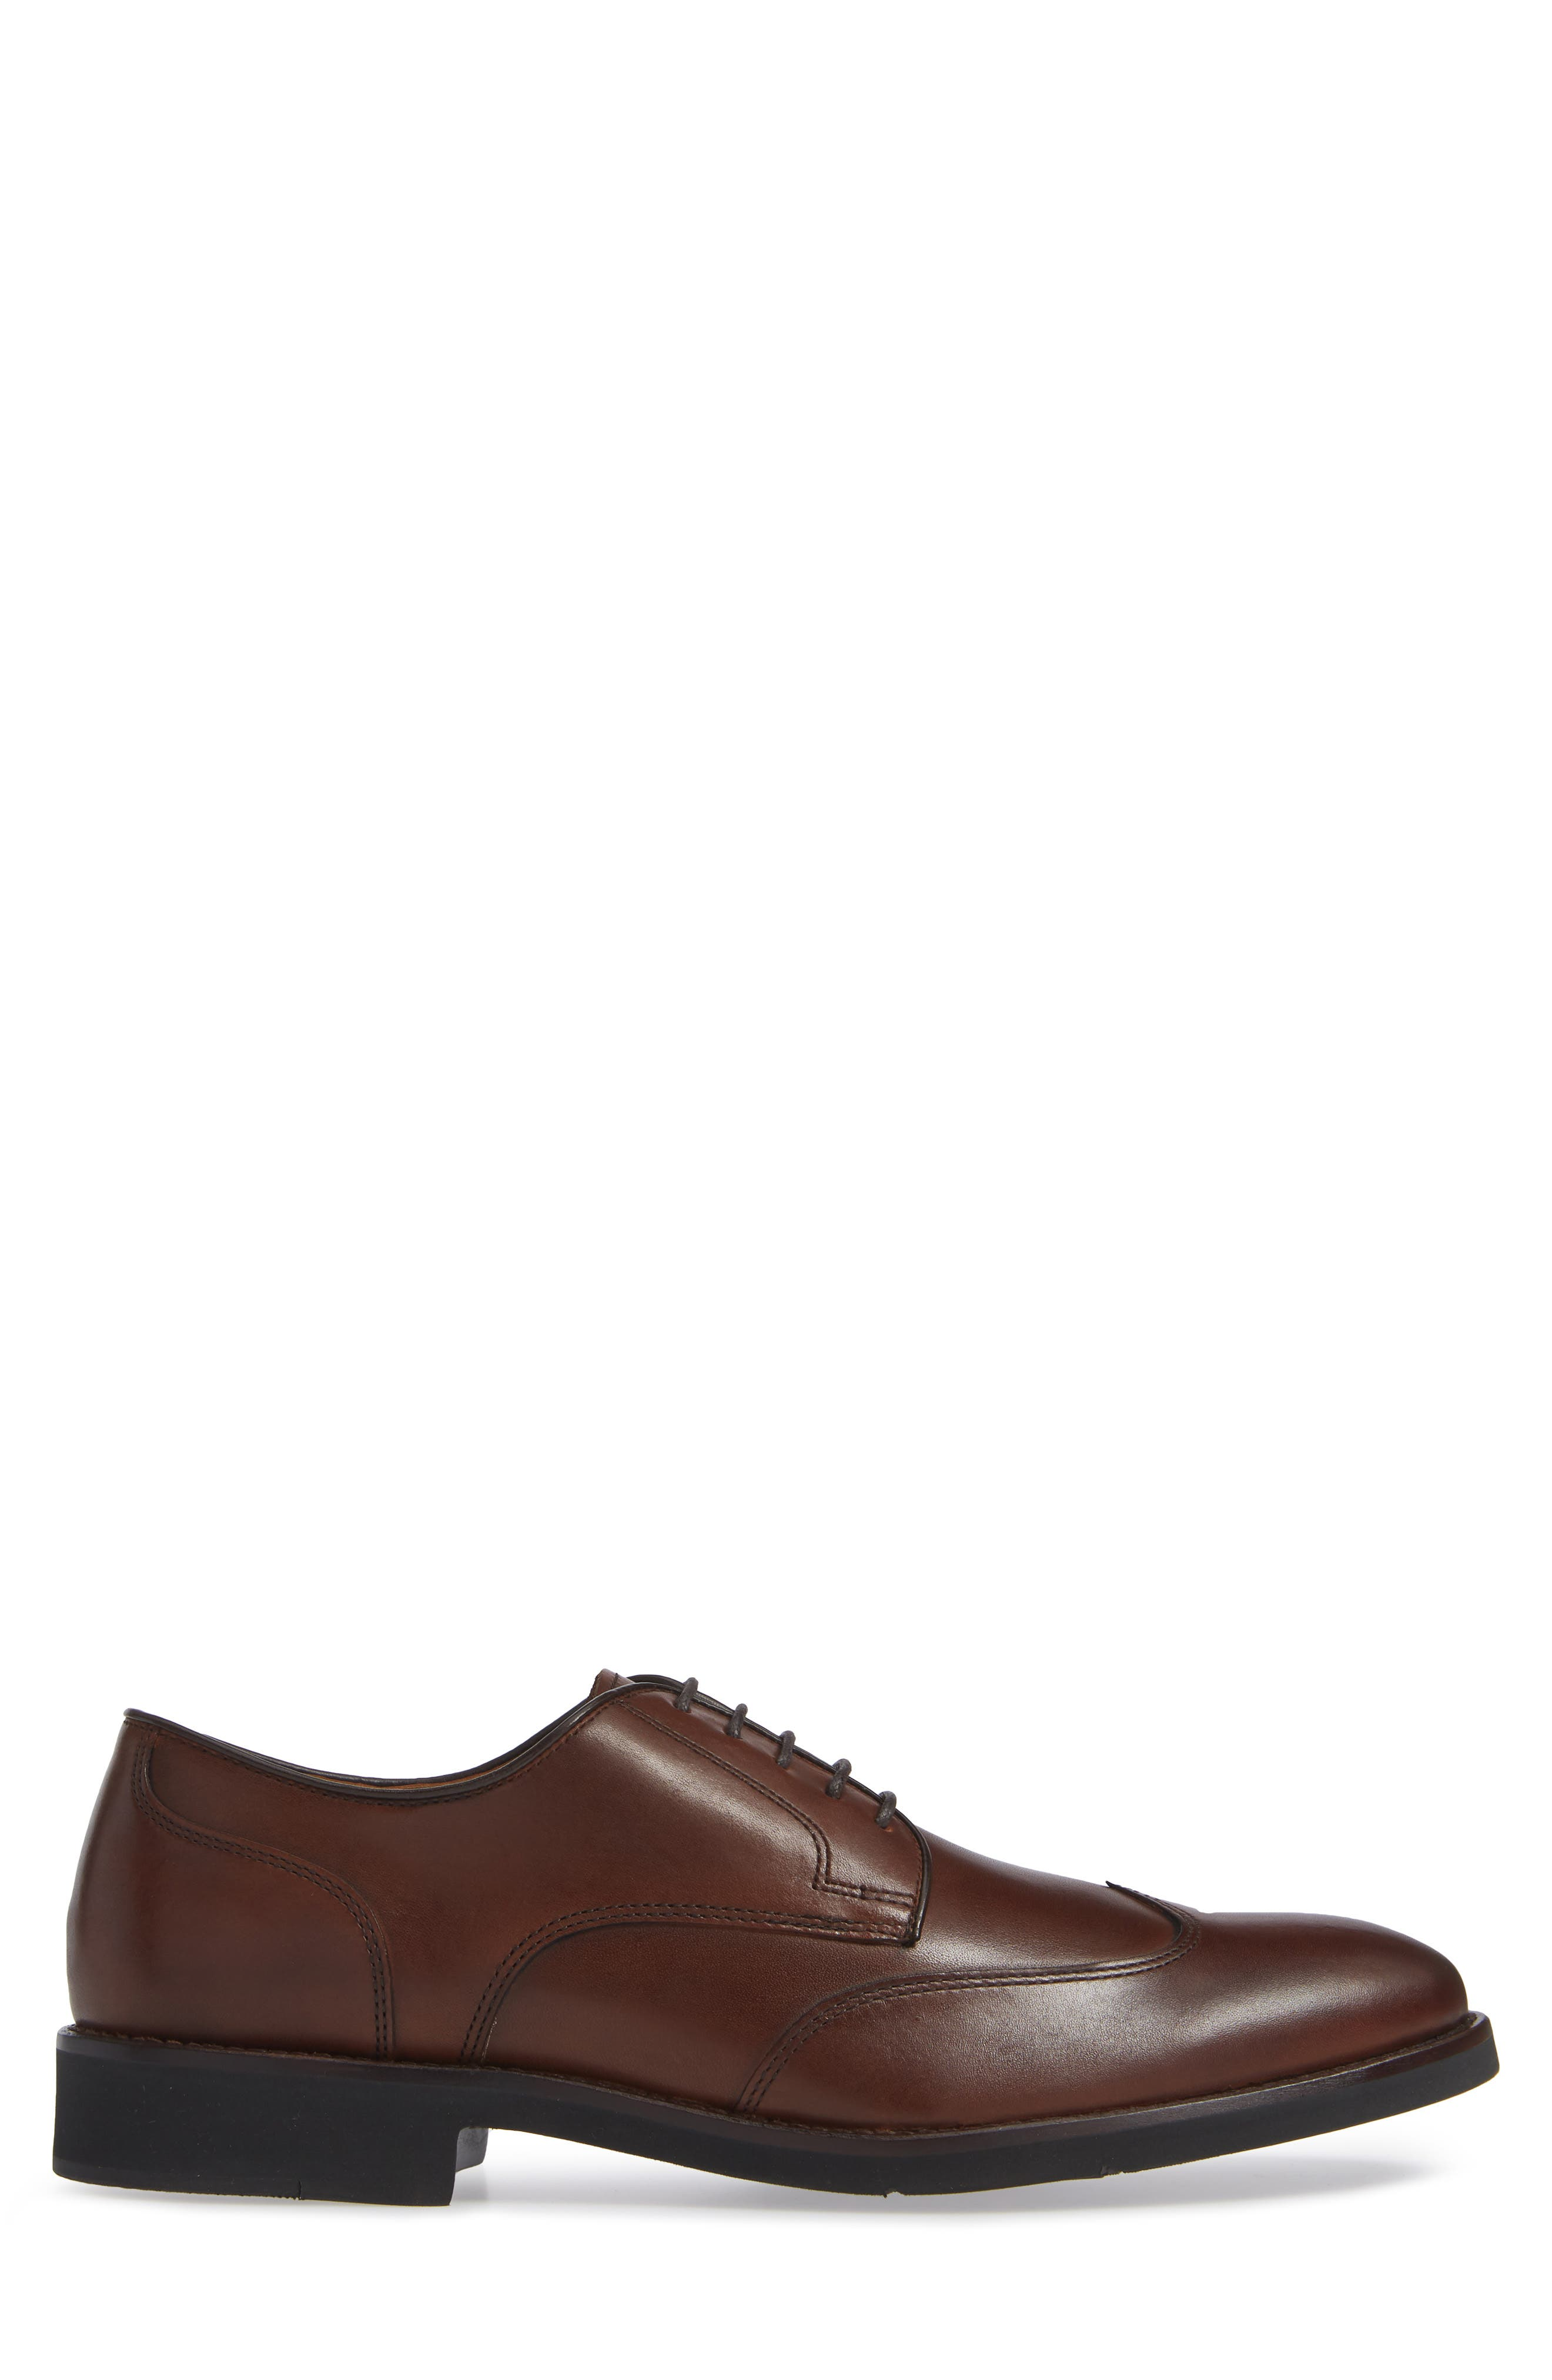 Carlson Wingtip,                             Alternate thumbnail 3, color,                             OAK LEATHER